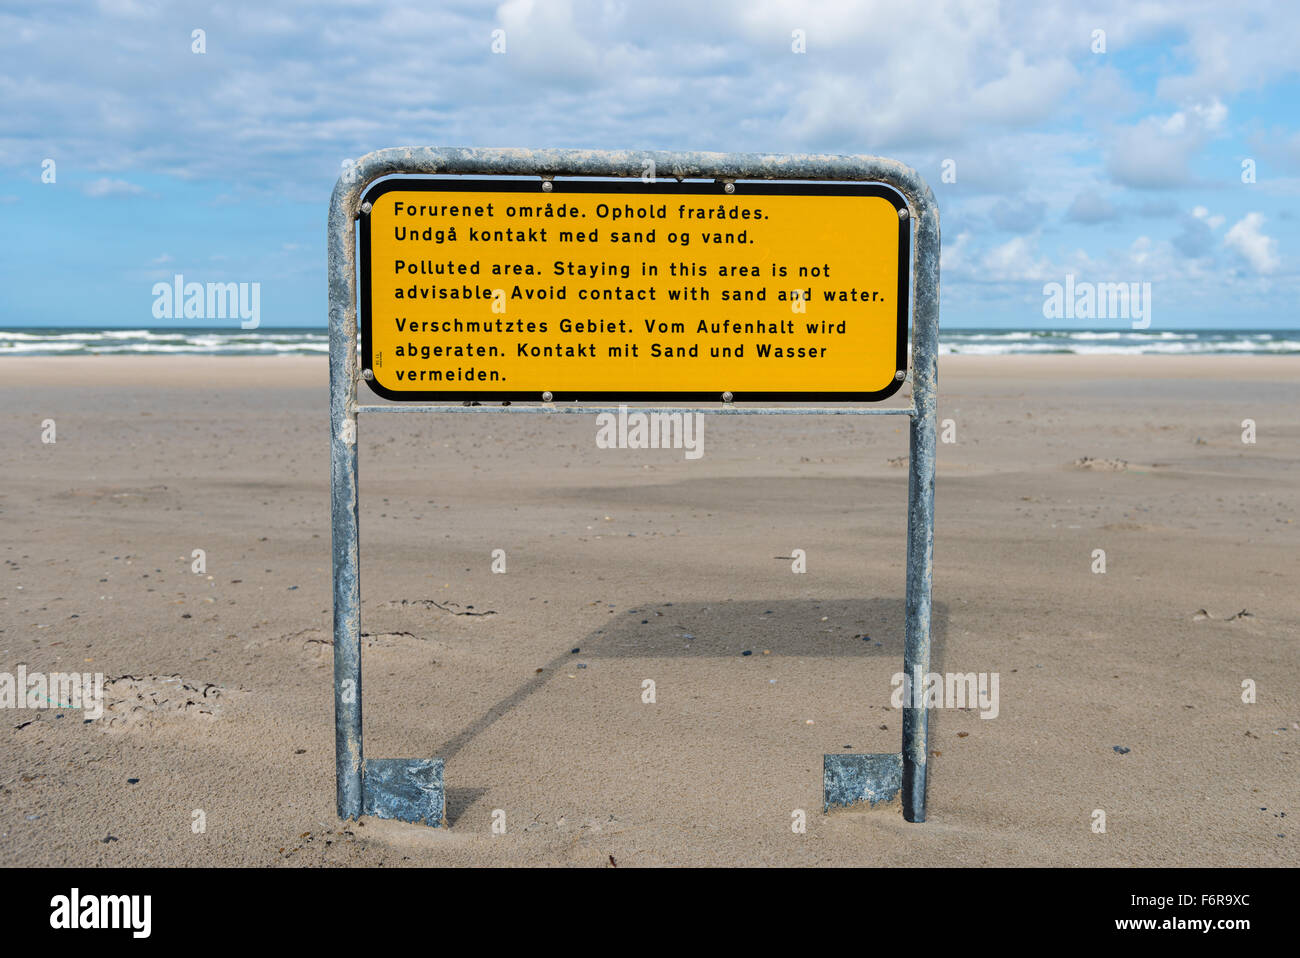 Warning sign, polluted area at Henne Mølle Å beach south, Oksböl, Region of Southern Denmark, Denmark - Stock Image